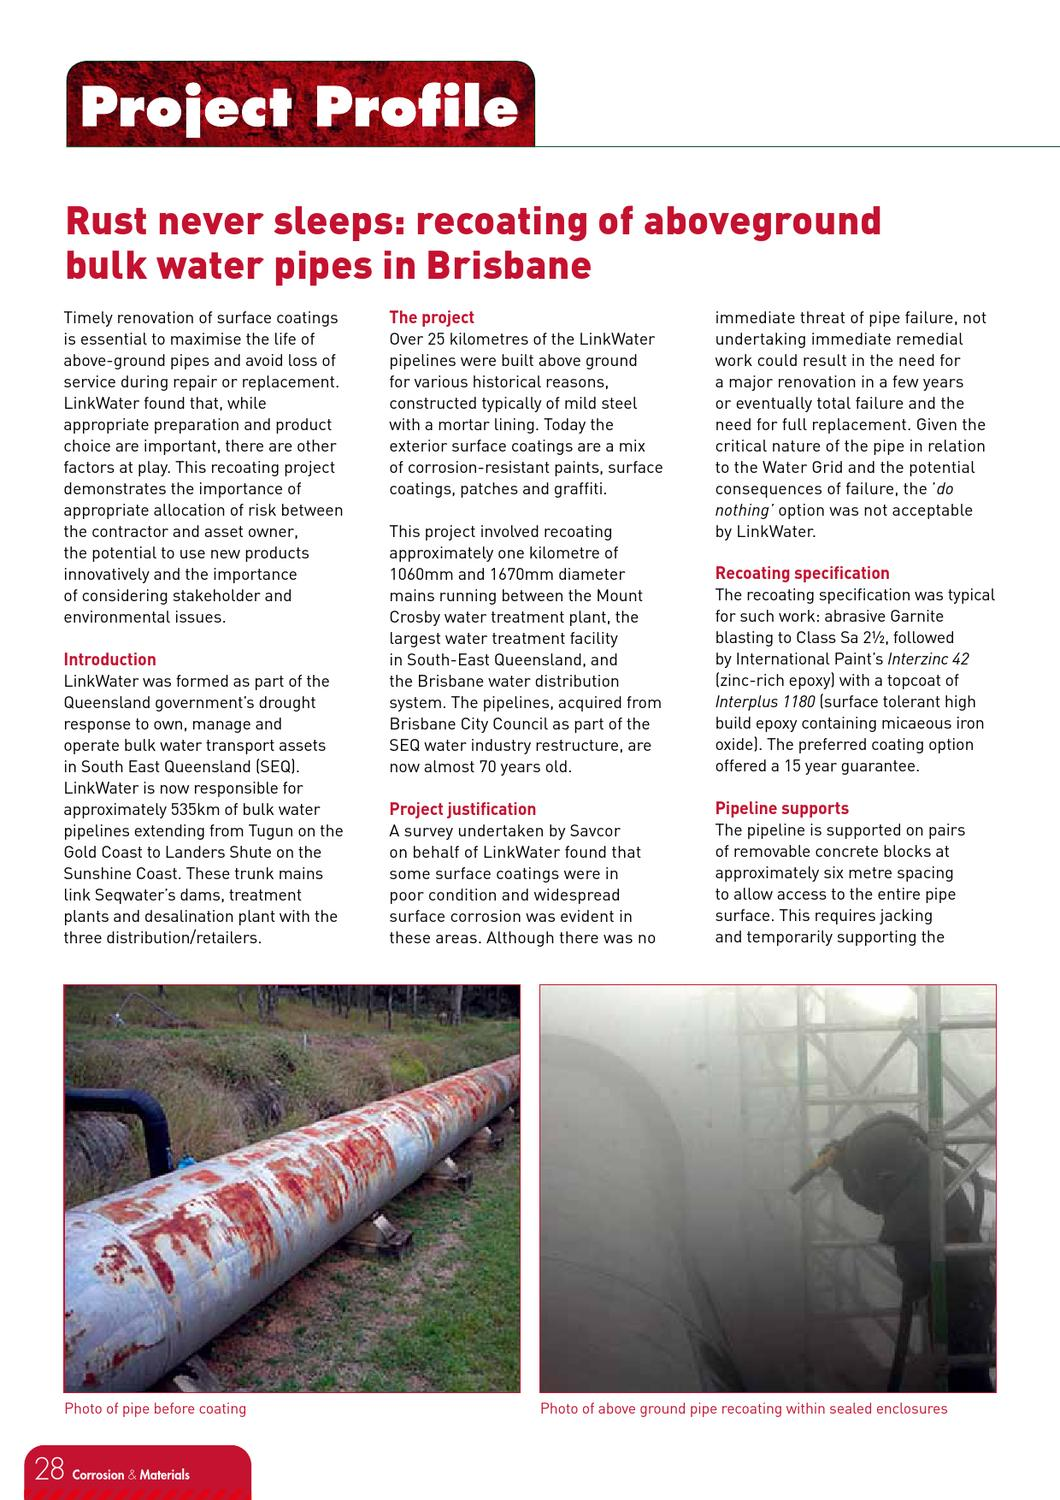 Corrosion & Materials August 2011 by Australasian Corrosion